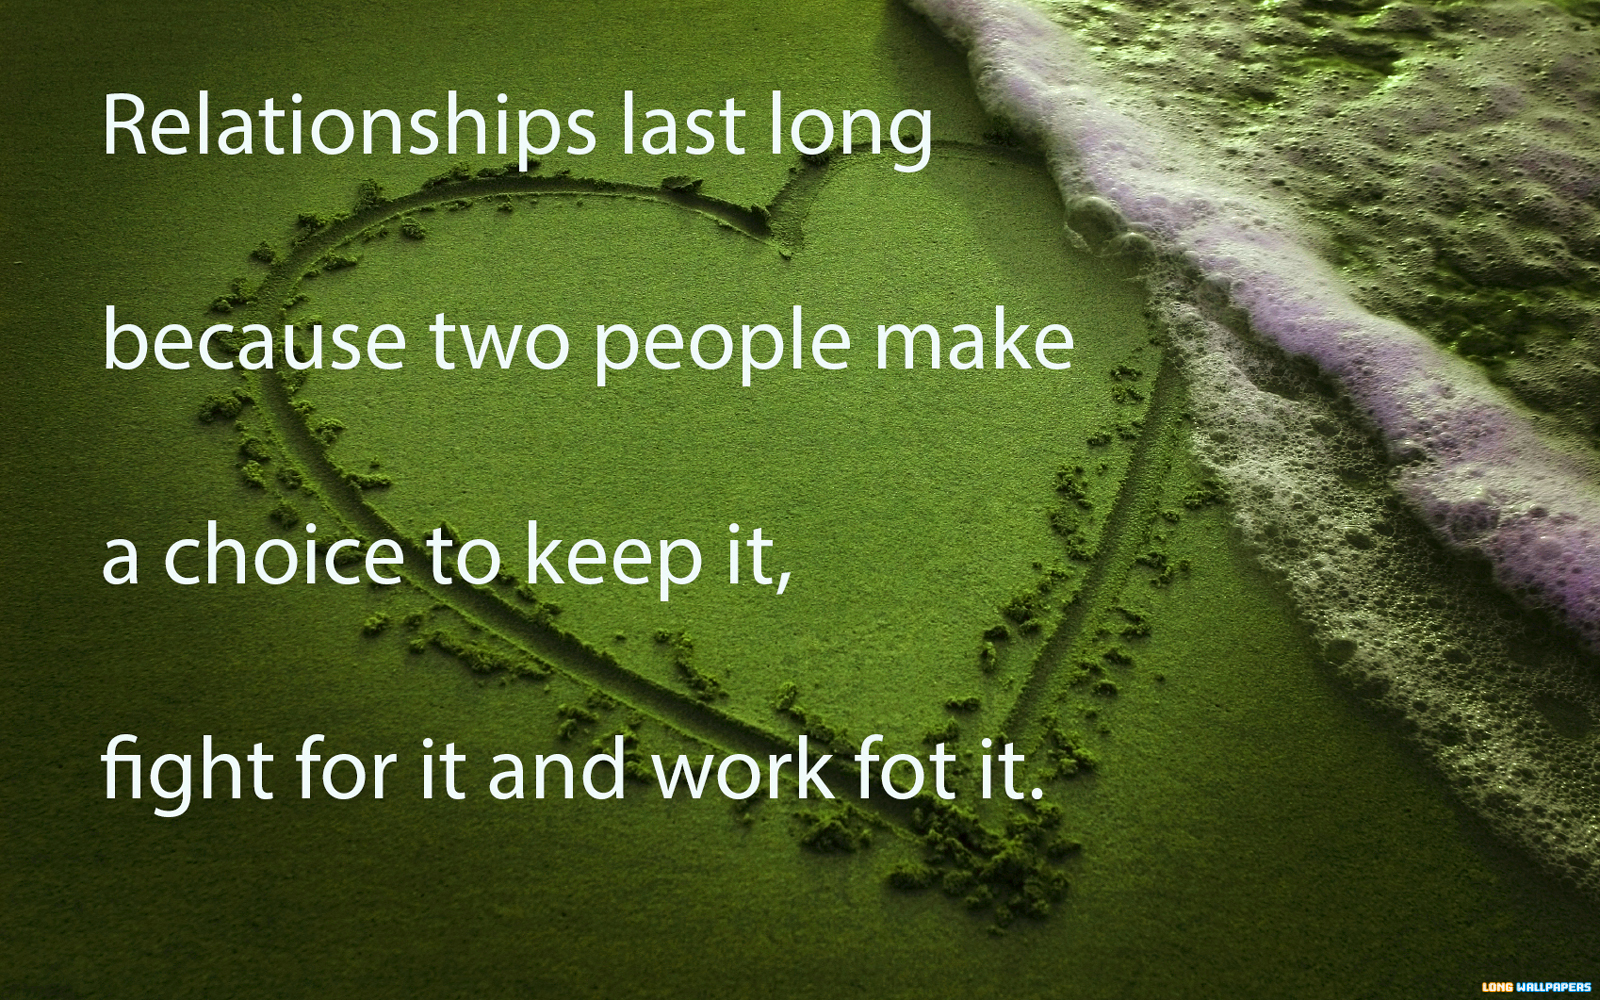 Forum on this topic: How to Make a Relationship Work, how-to-make-a-relationship-work/